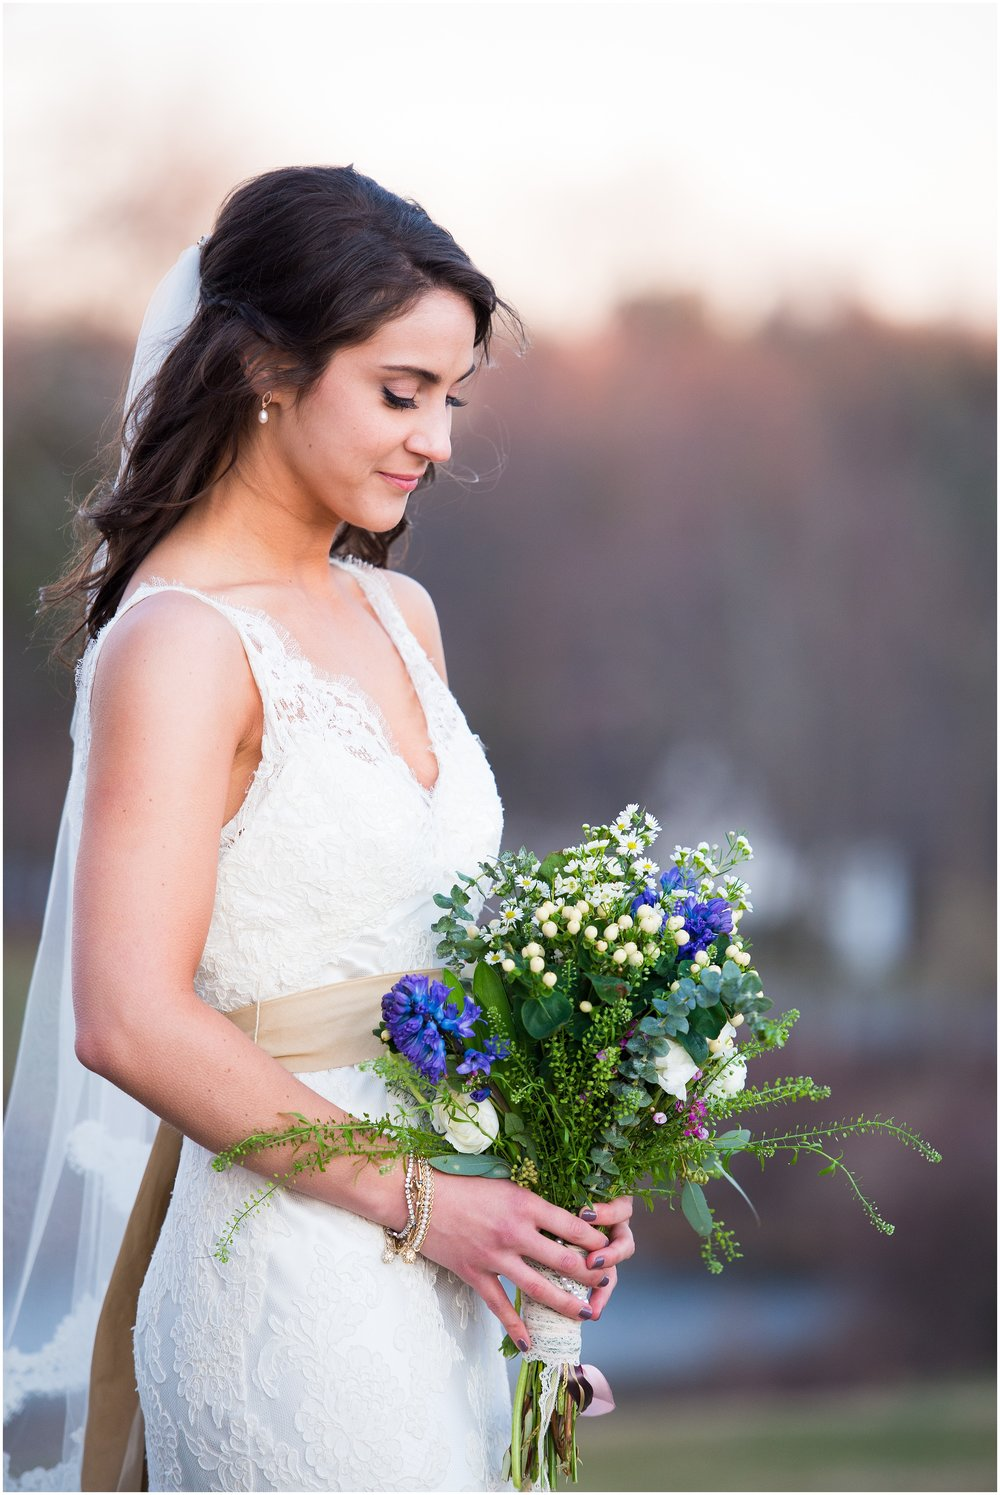 Boston Wedding Photographer | Boston florist